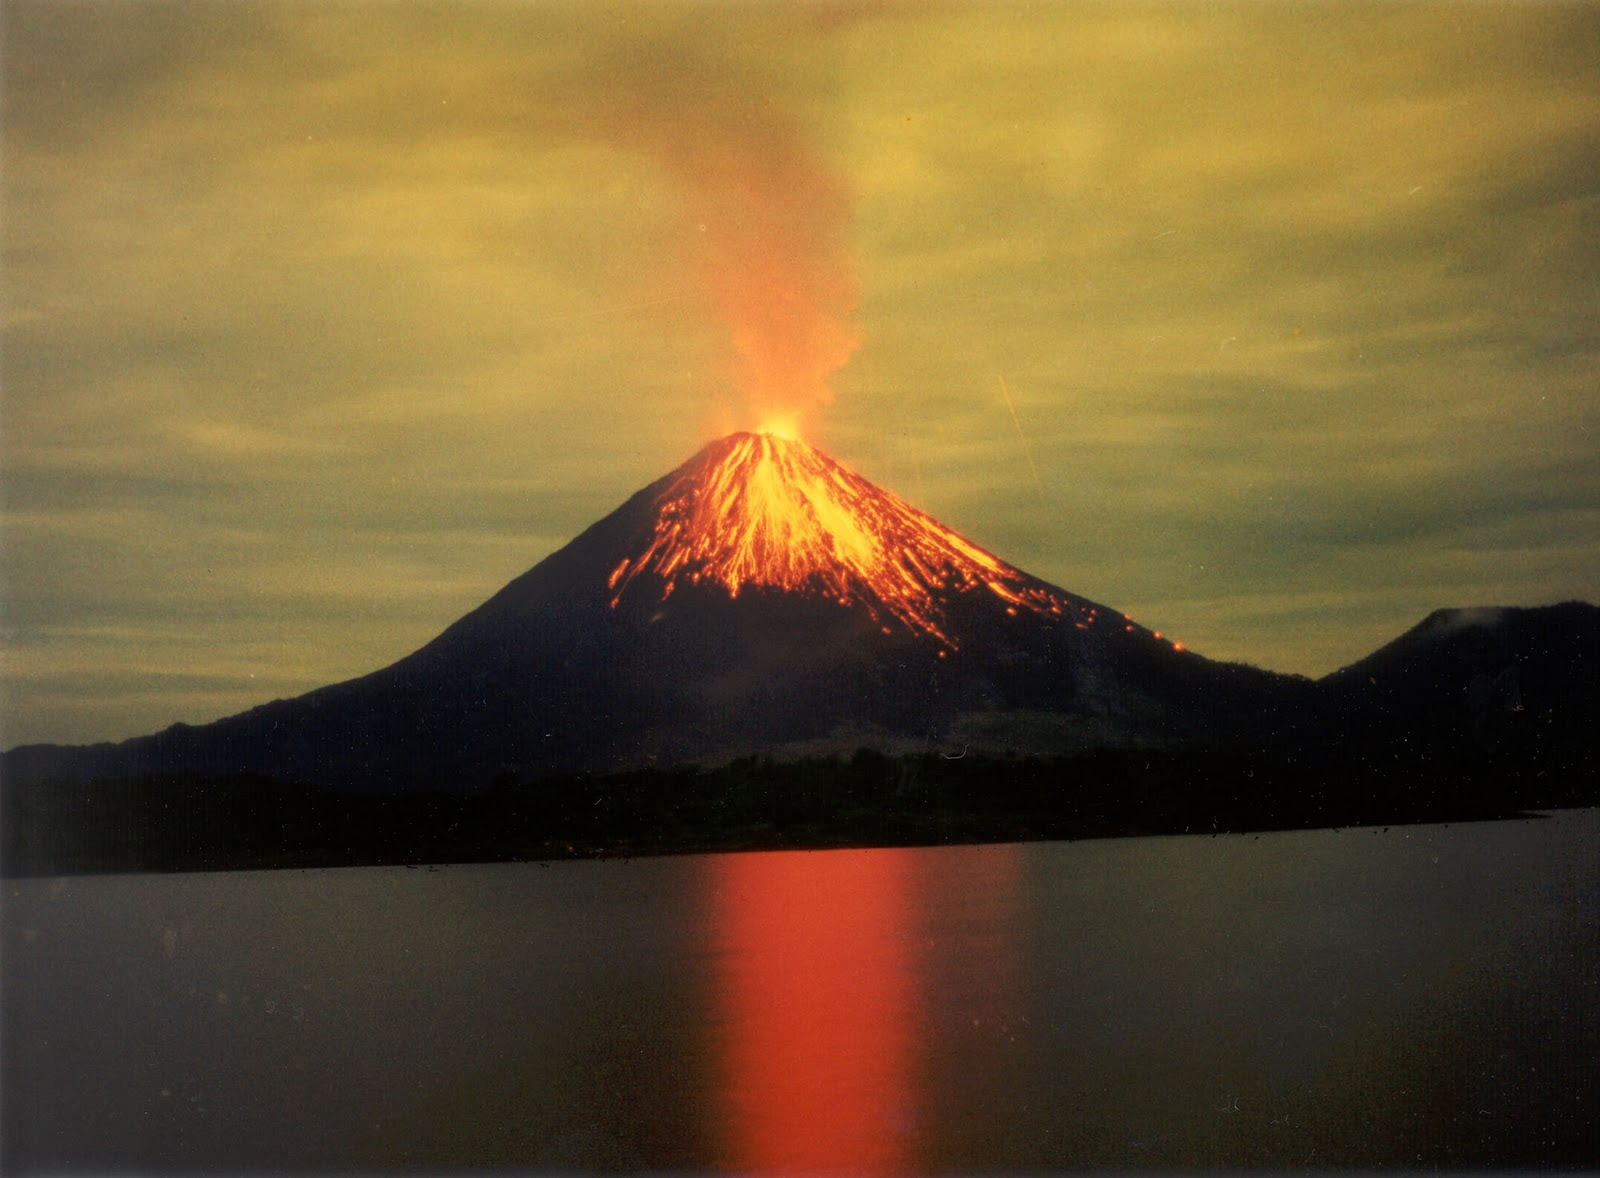 The volcano was dormant for hundreds of years